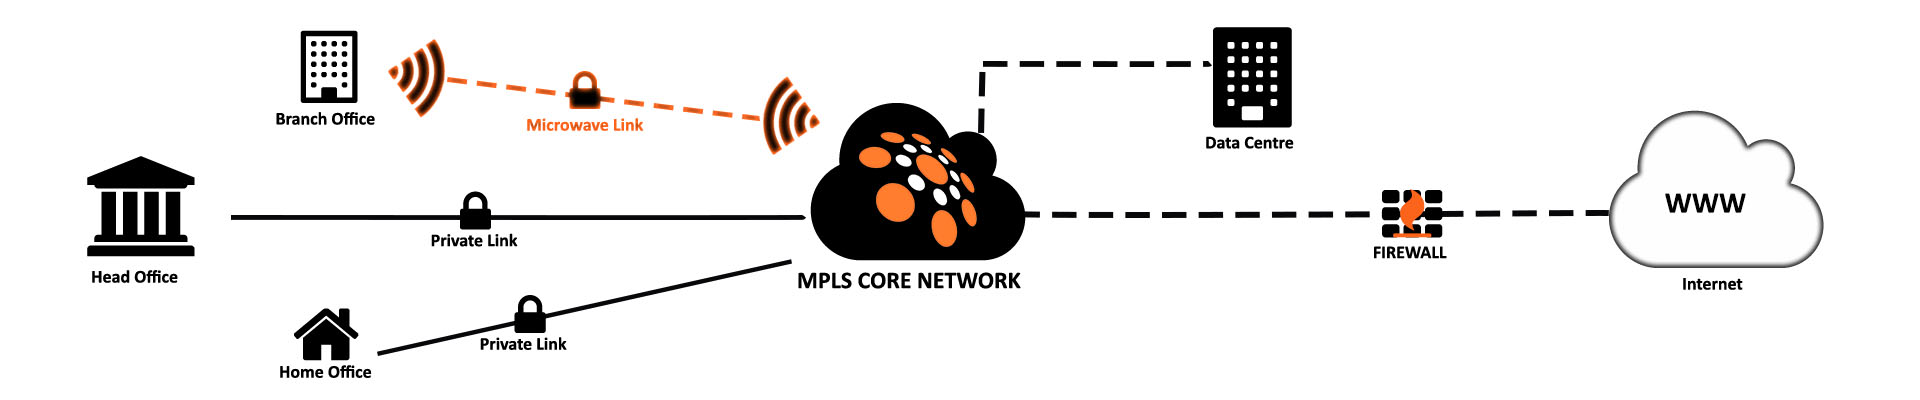 assets/Com2-Private-Data-Networks-Microwave-Links.jpg